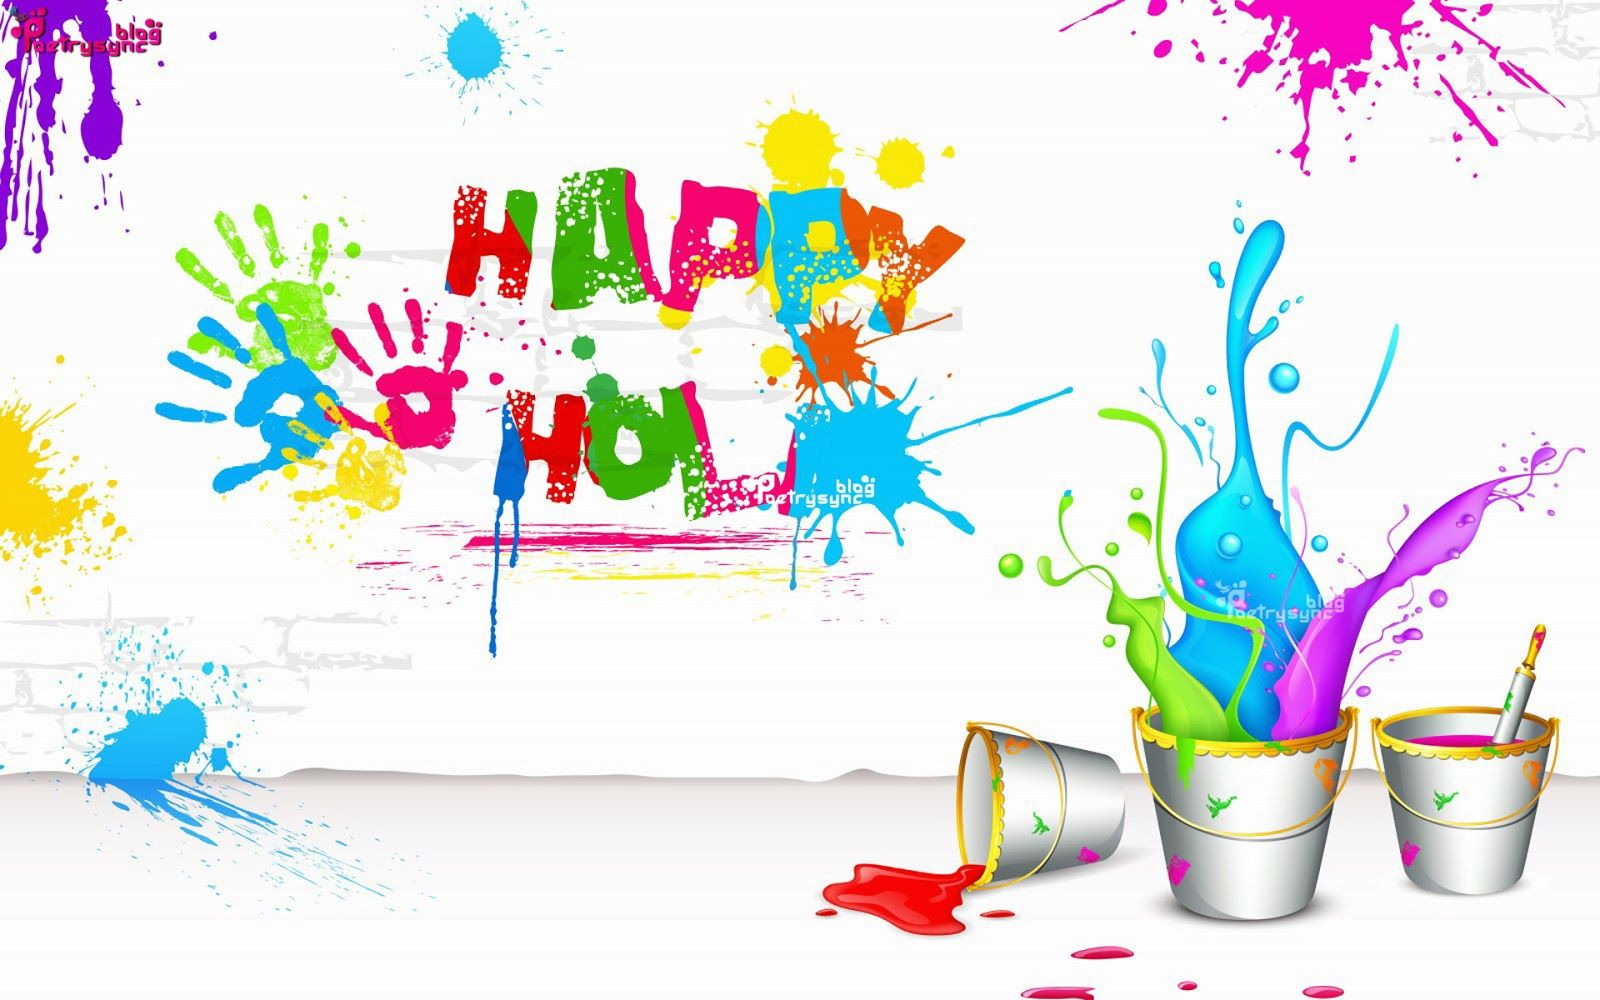 Happy holi festival of colors hd 3d wallpapers with wishes 1920 1200 happy holi festival of colors hd 3d wallpapers with wishes 1920 1200 kristyandbryce Image collections